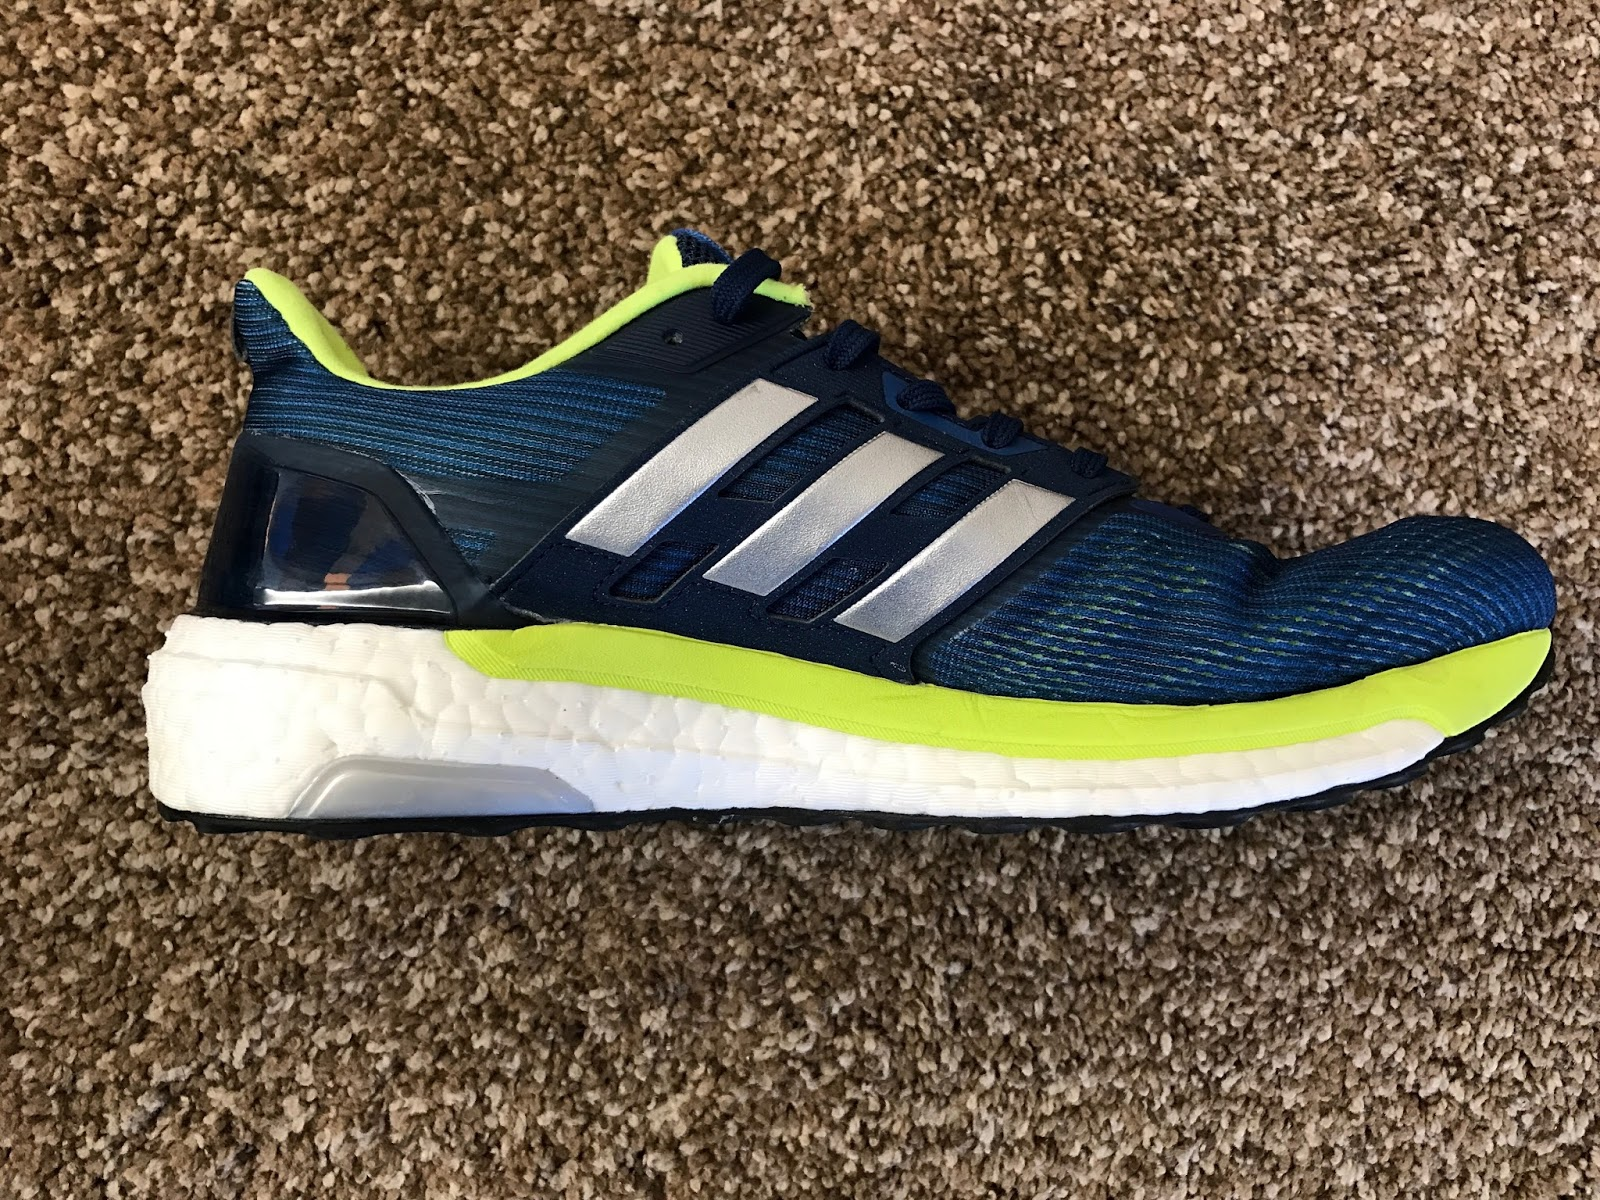 63e577a40a5db adidas supernova boost endless energy off 64% - www.letertre ...